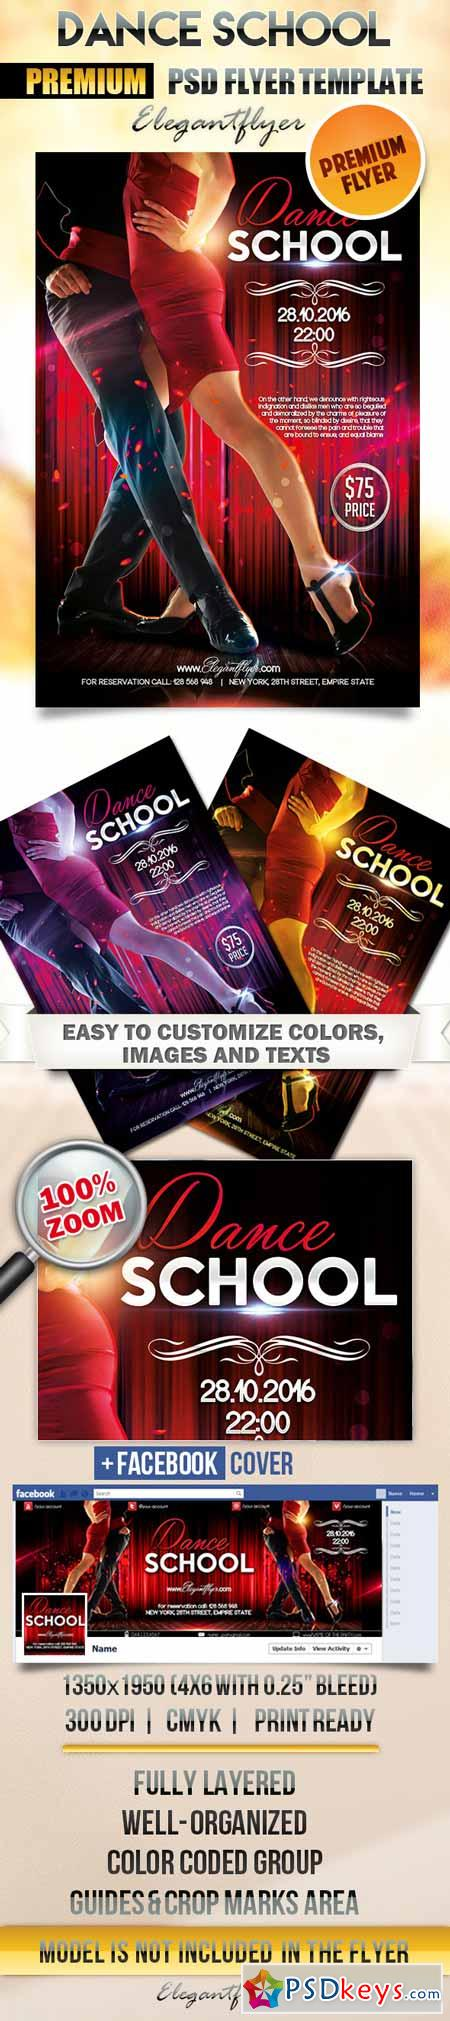 dance school flyer psd template facebook cover dance school flyer psd template facebook cover